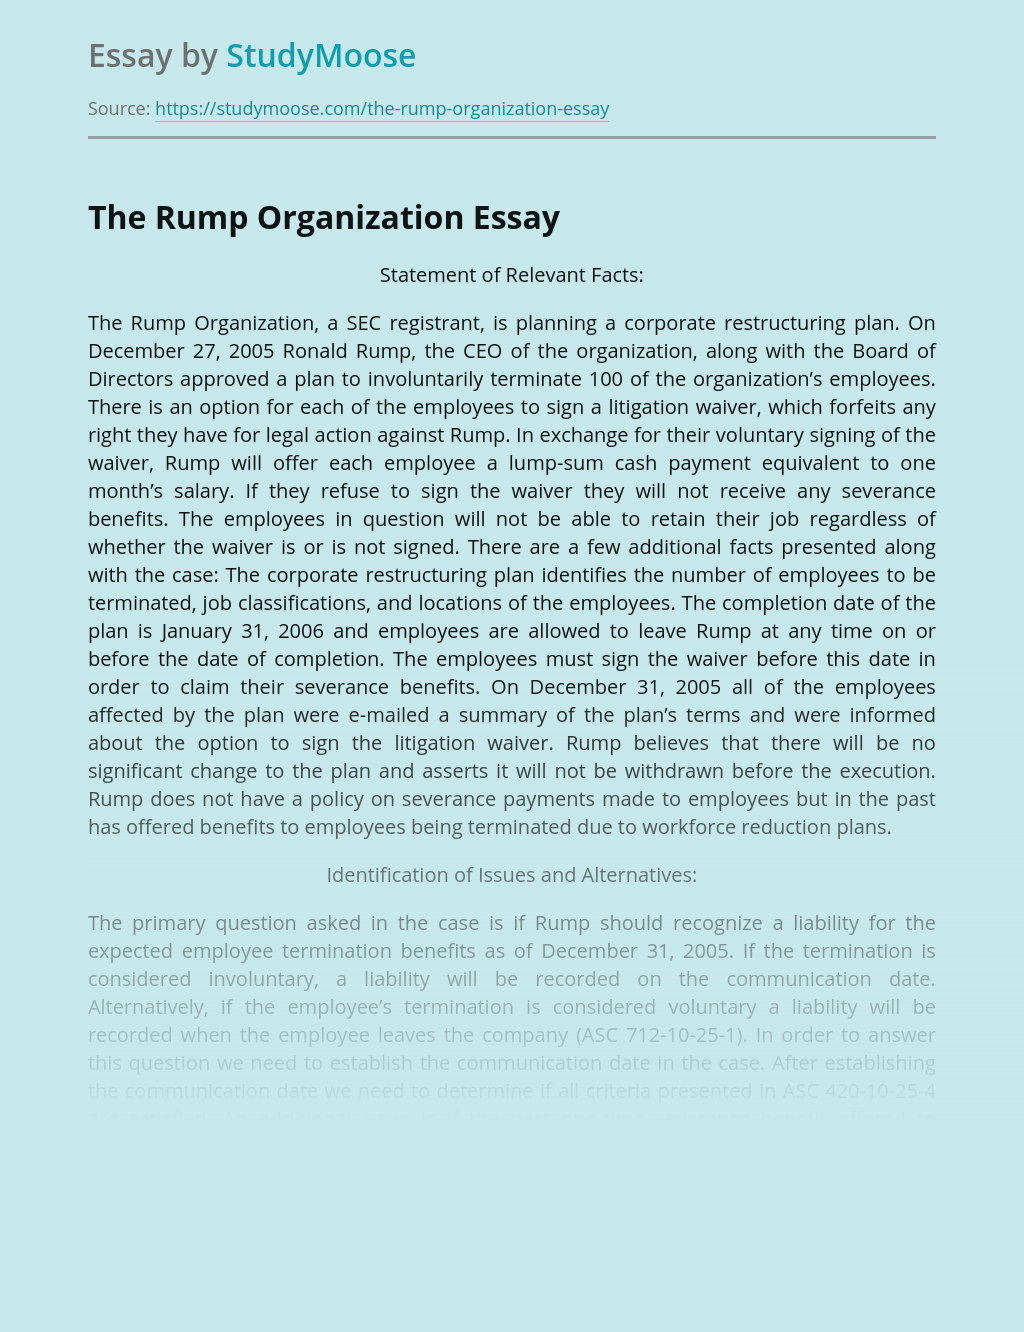 The Rump Organization